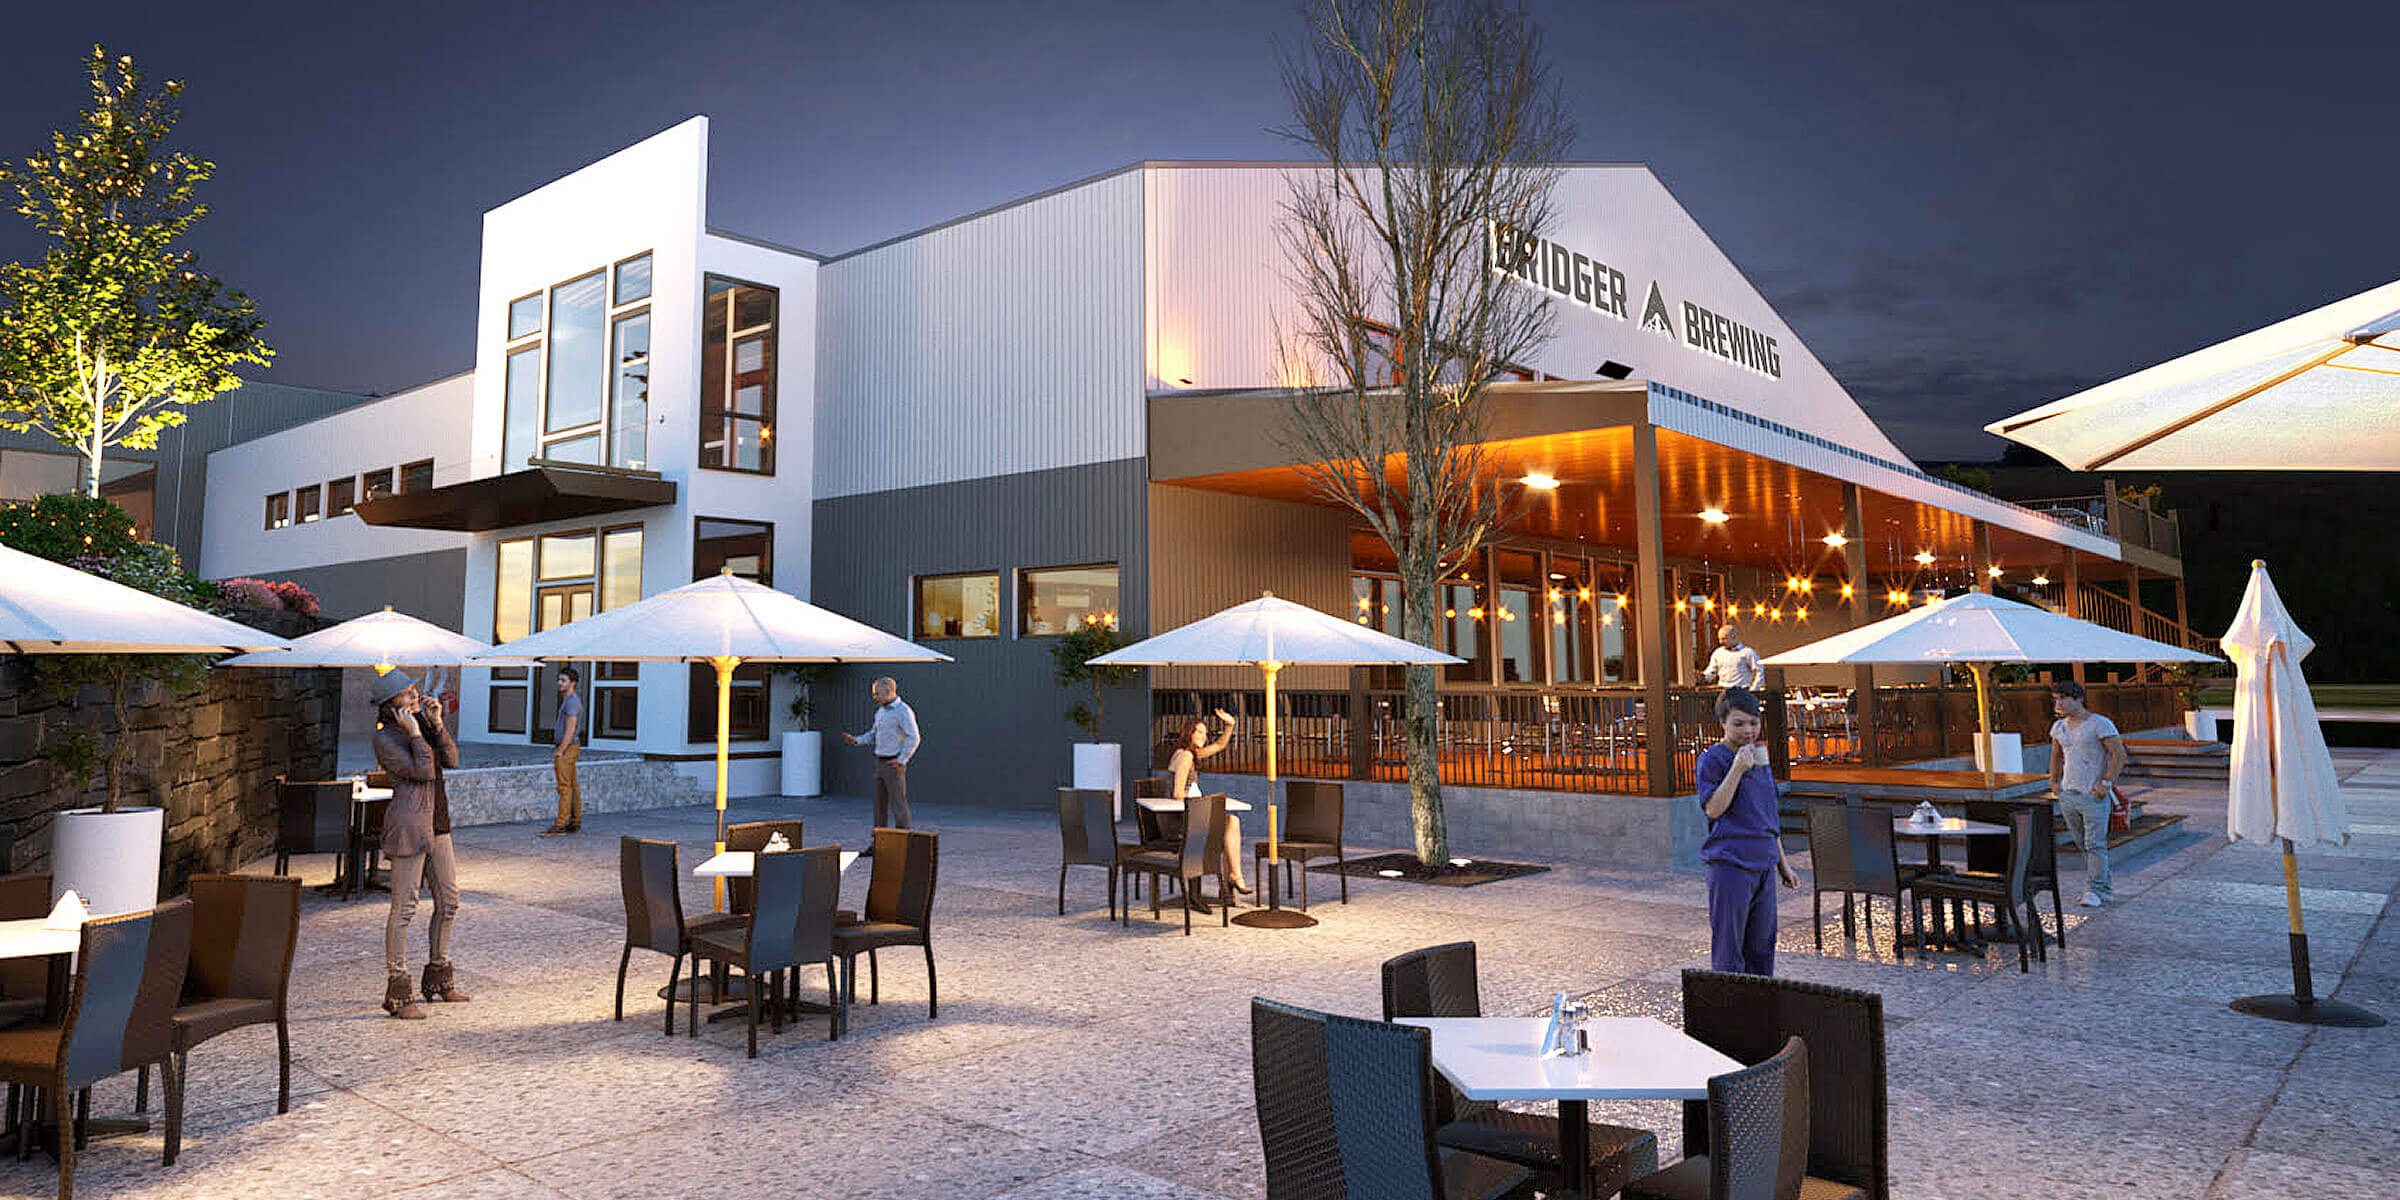 An architectural rendering of the new Bridger Brewing location in Three Forks, Montana